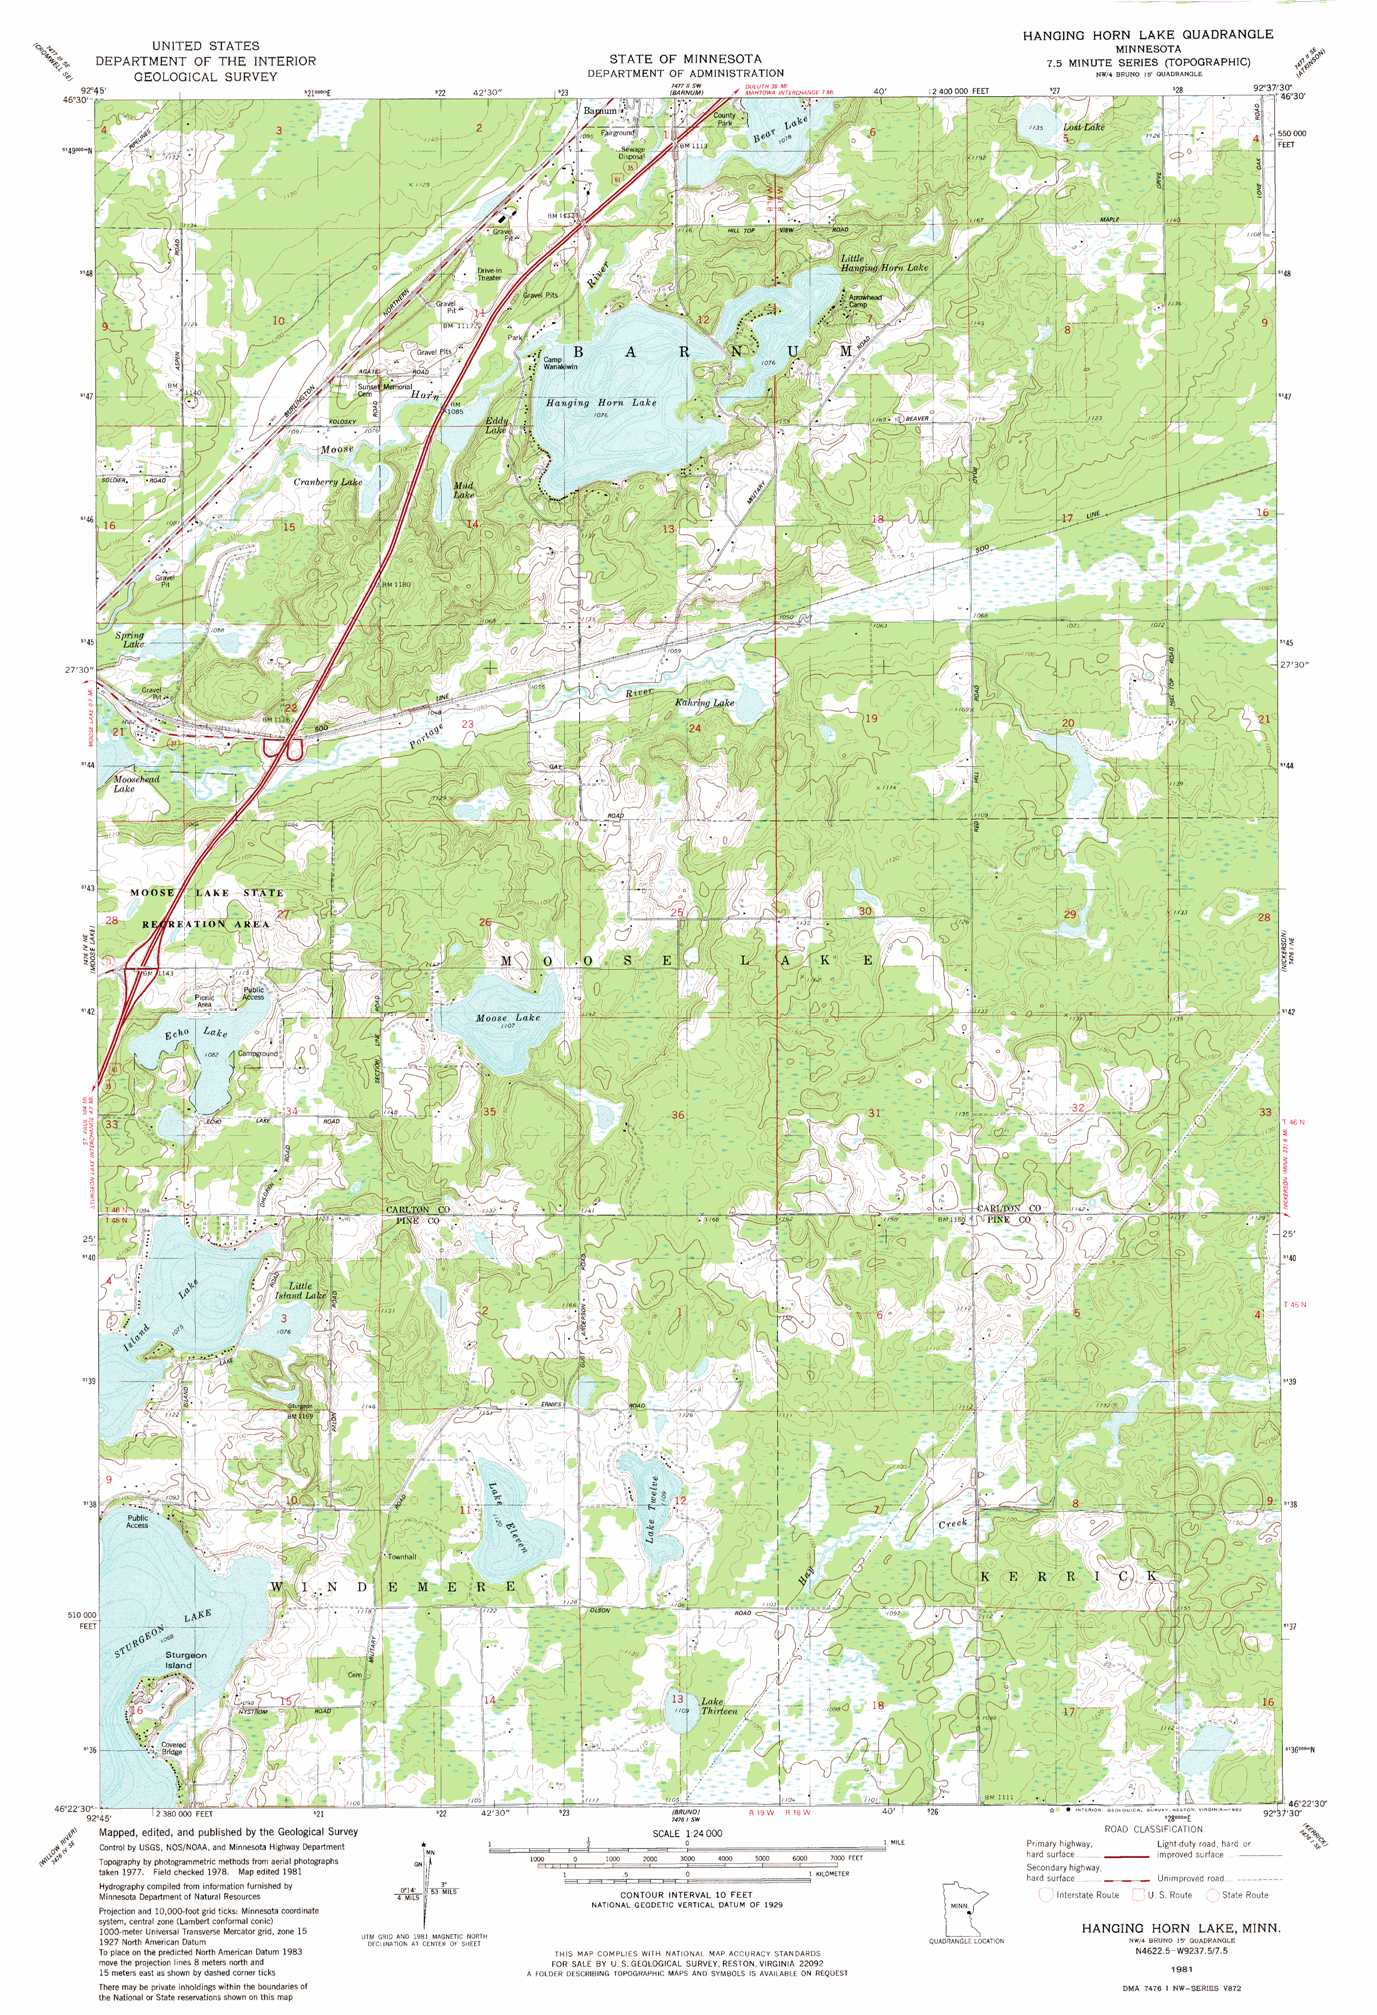 Hanging Horn Lake topographic map MN USGS Topo Quad 46092d6